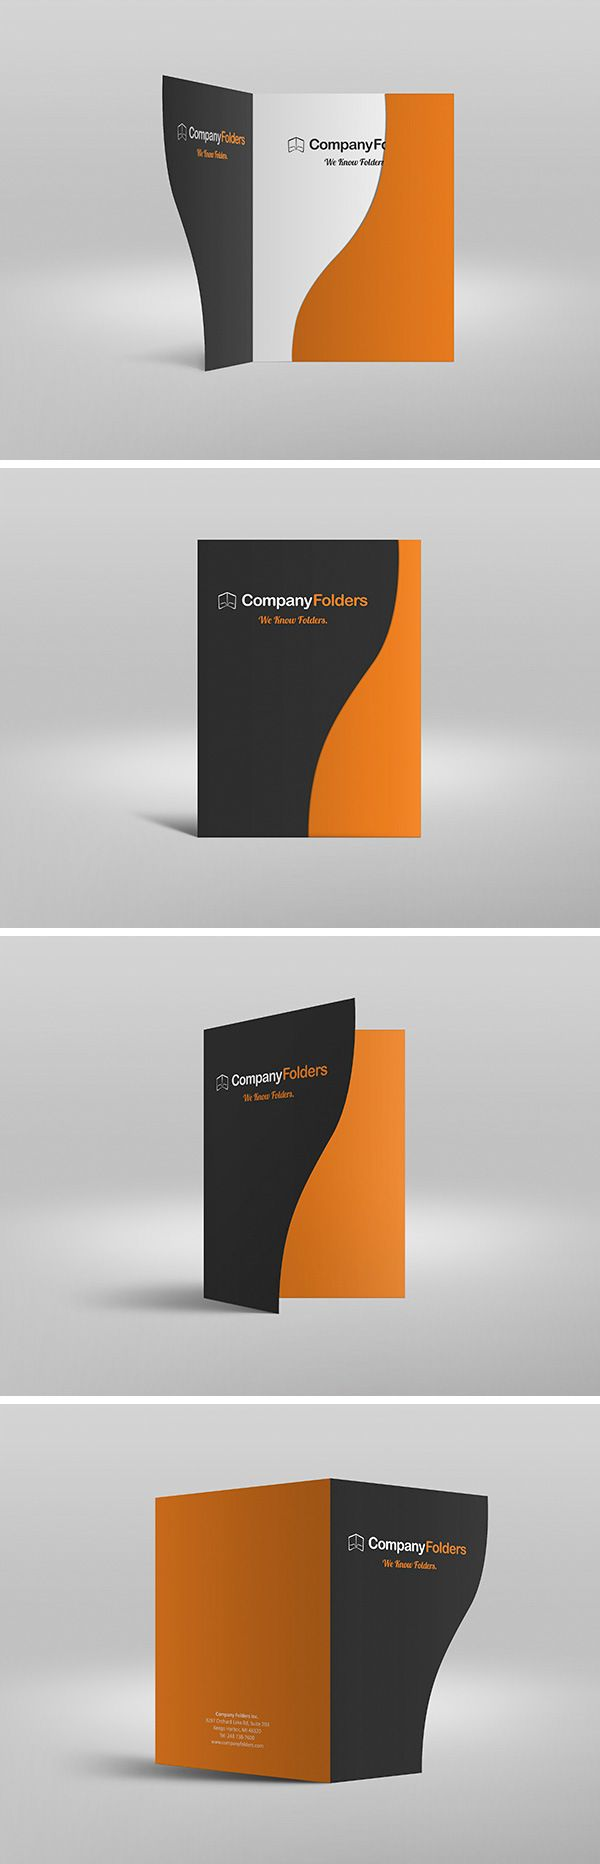 Serpentine Presentation Folder MockUp